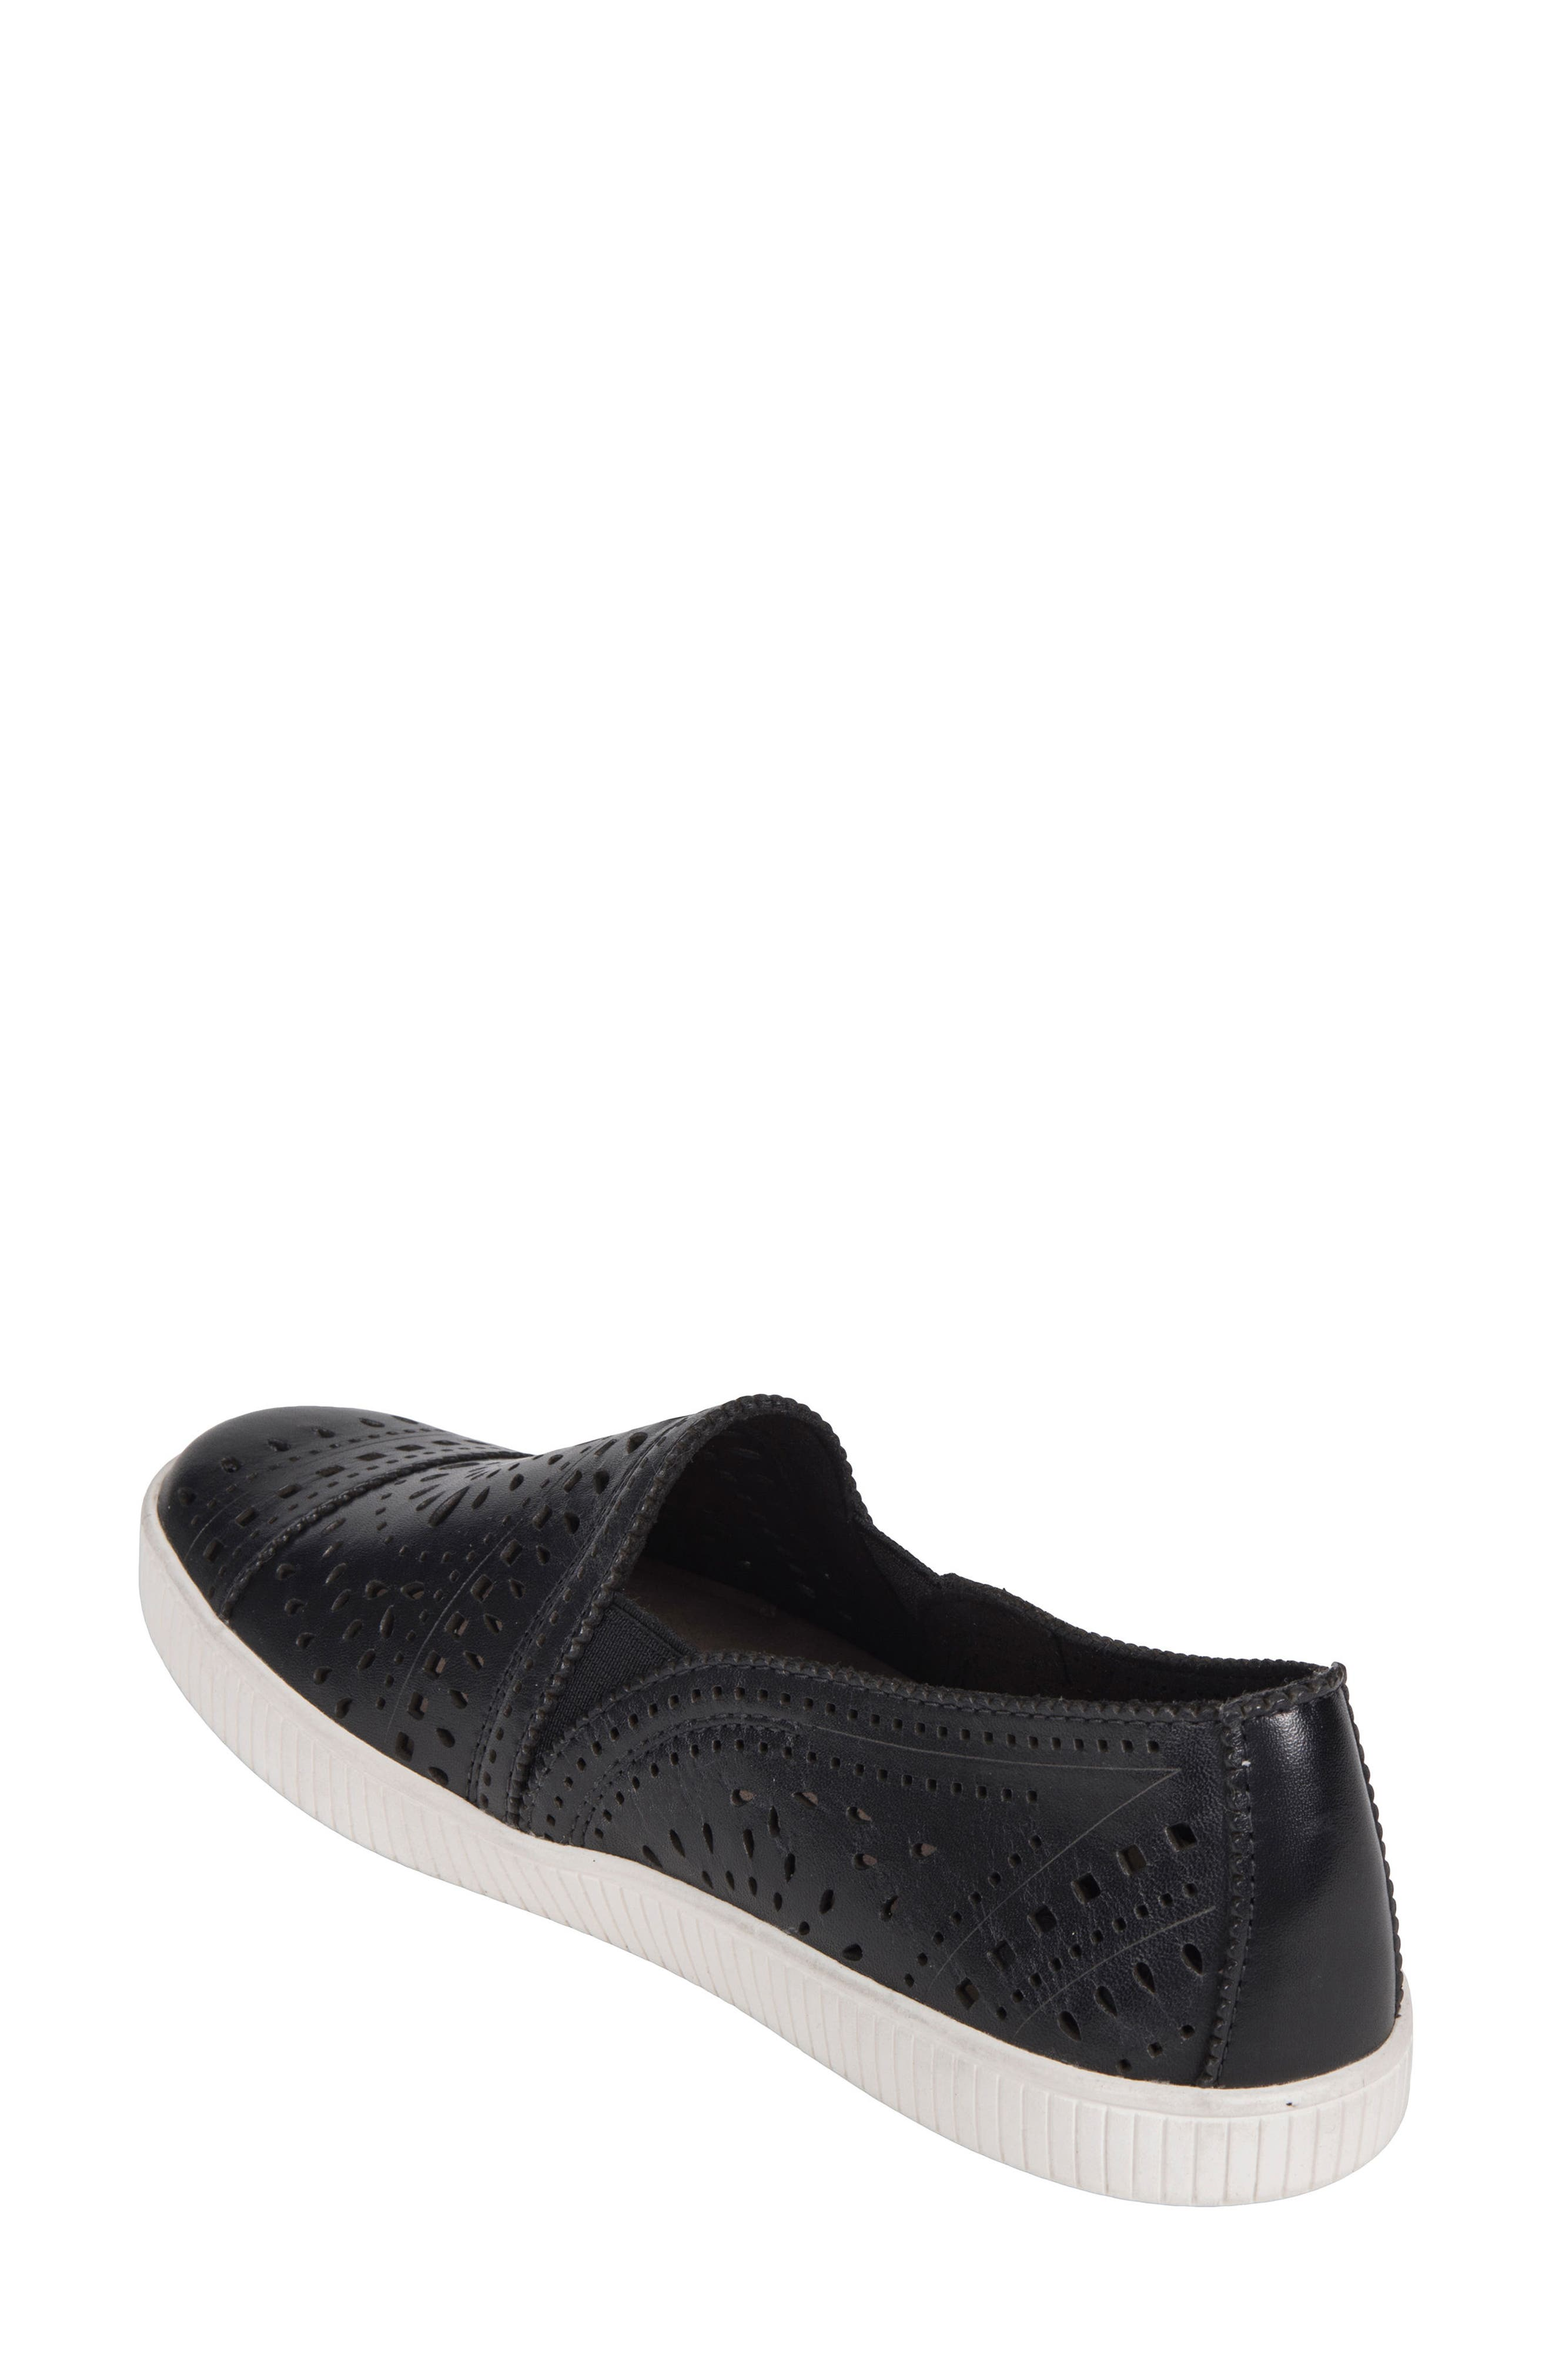 Tayberry Perforated Slip-On Sneaker,                             Alternate thumbnail 5, color,